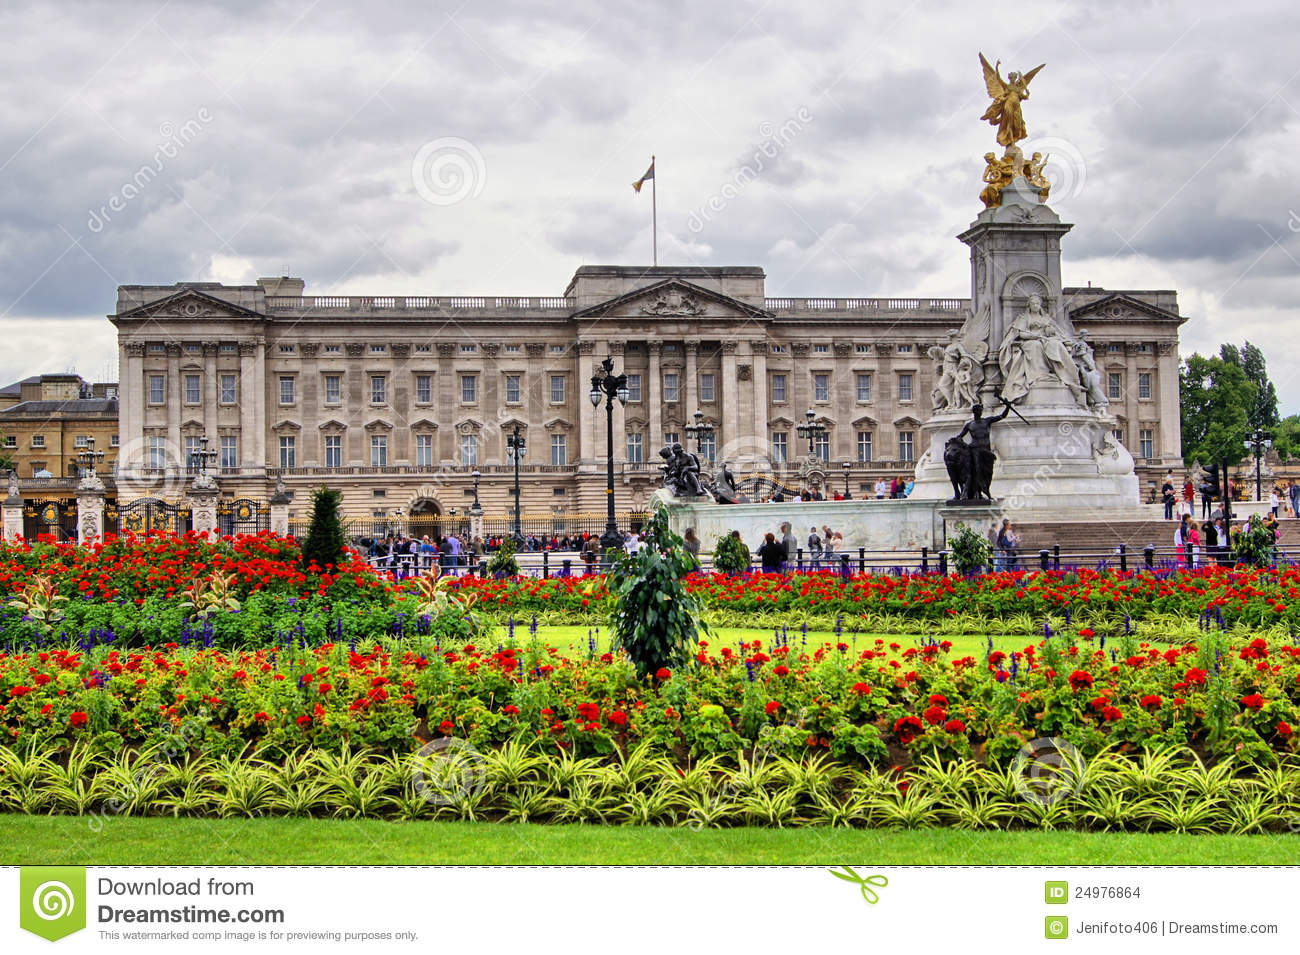 Buckingham palace images stock image 24976864 for Derriere les murs de mon jardin